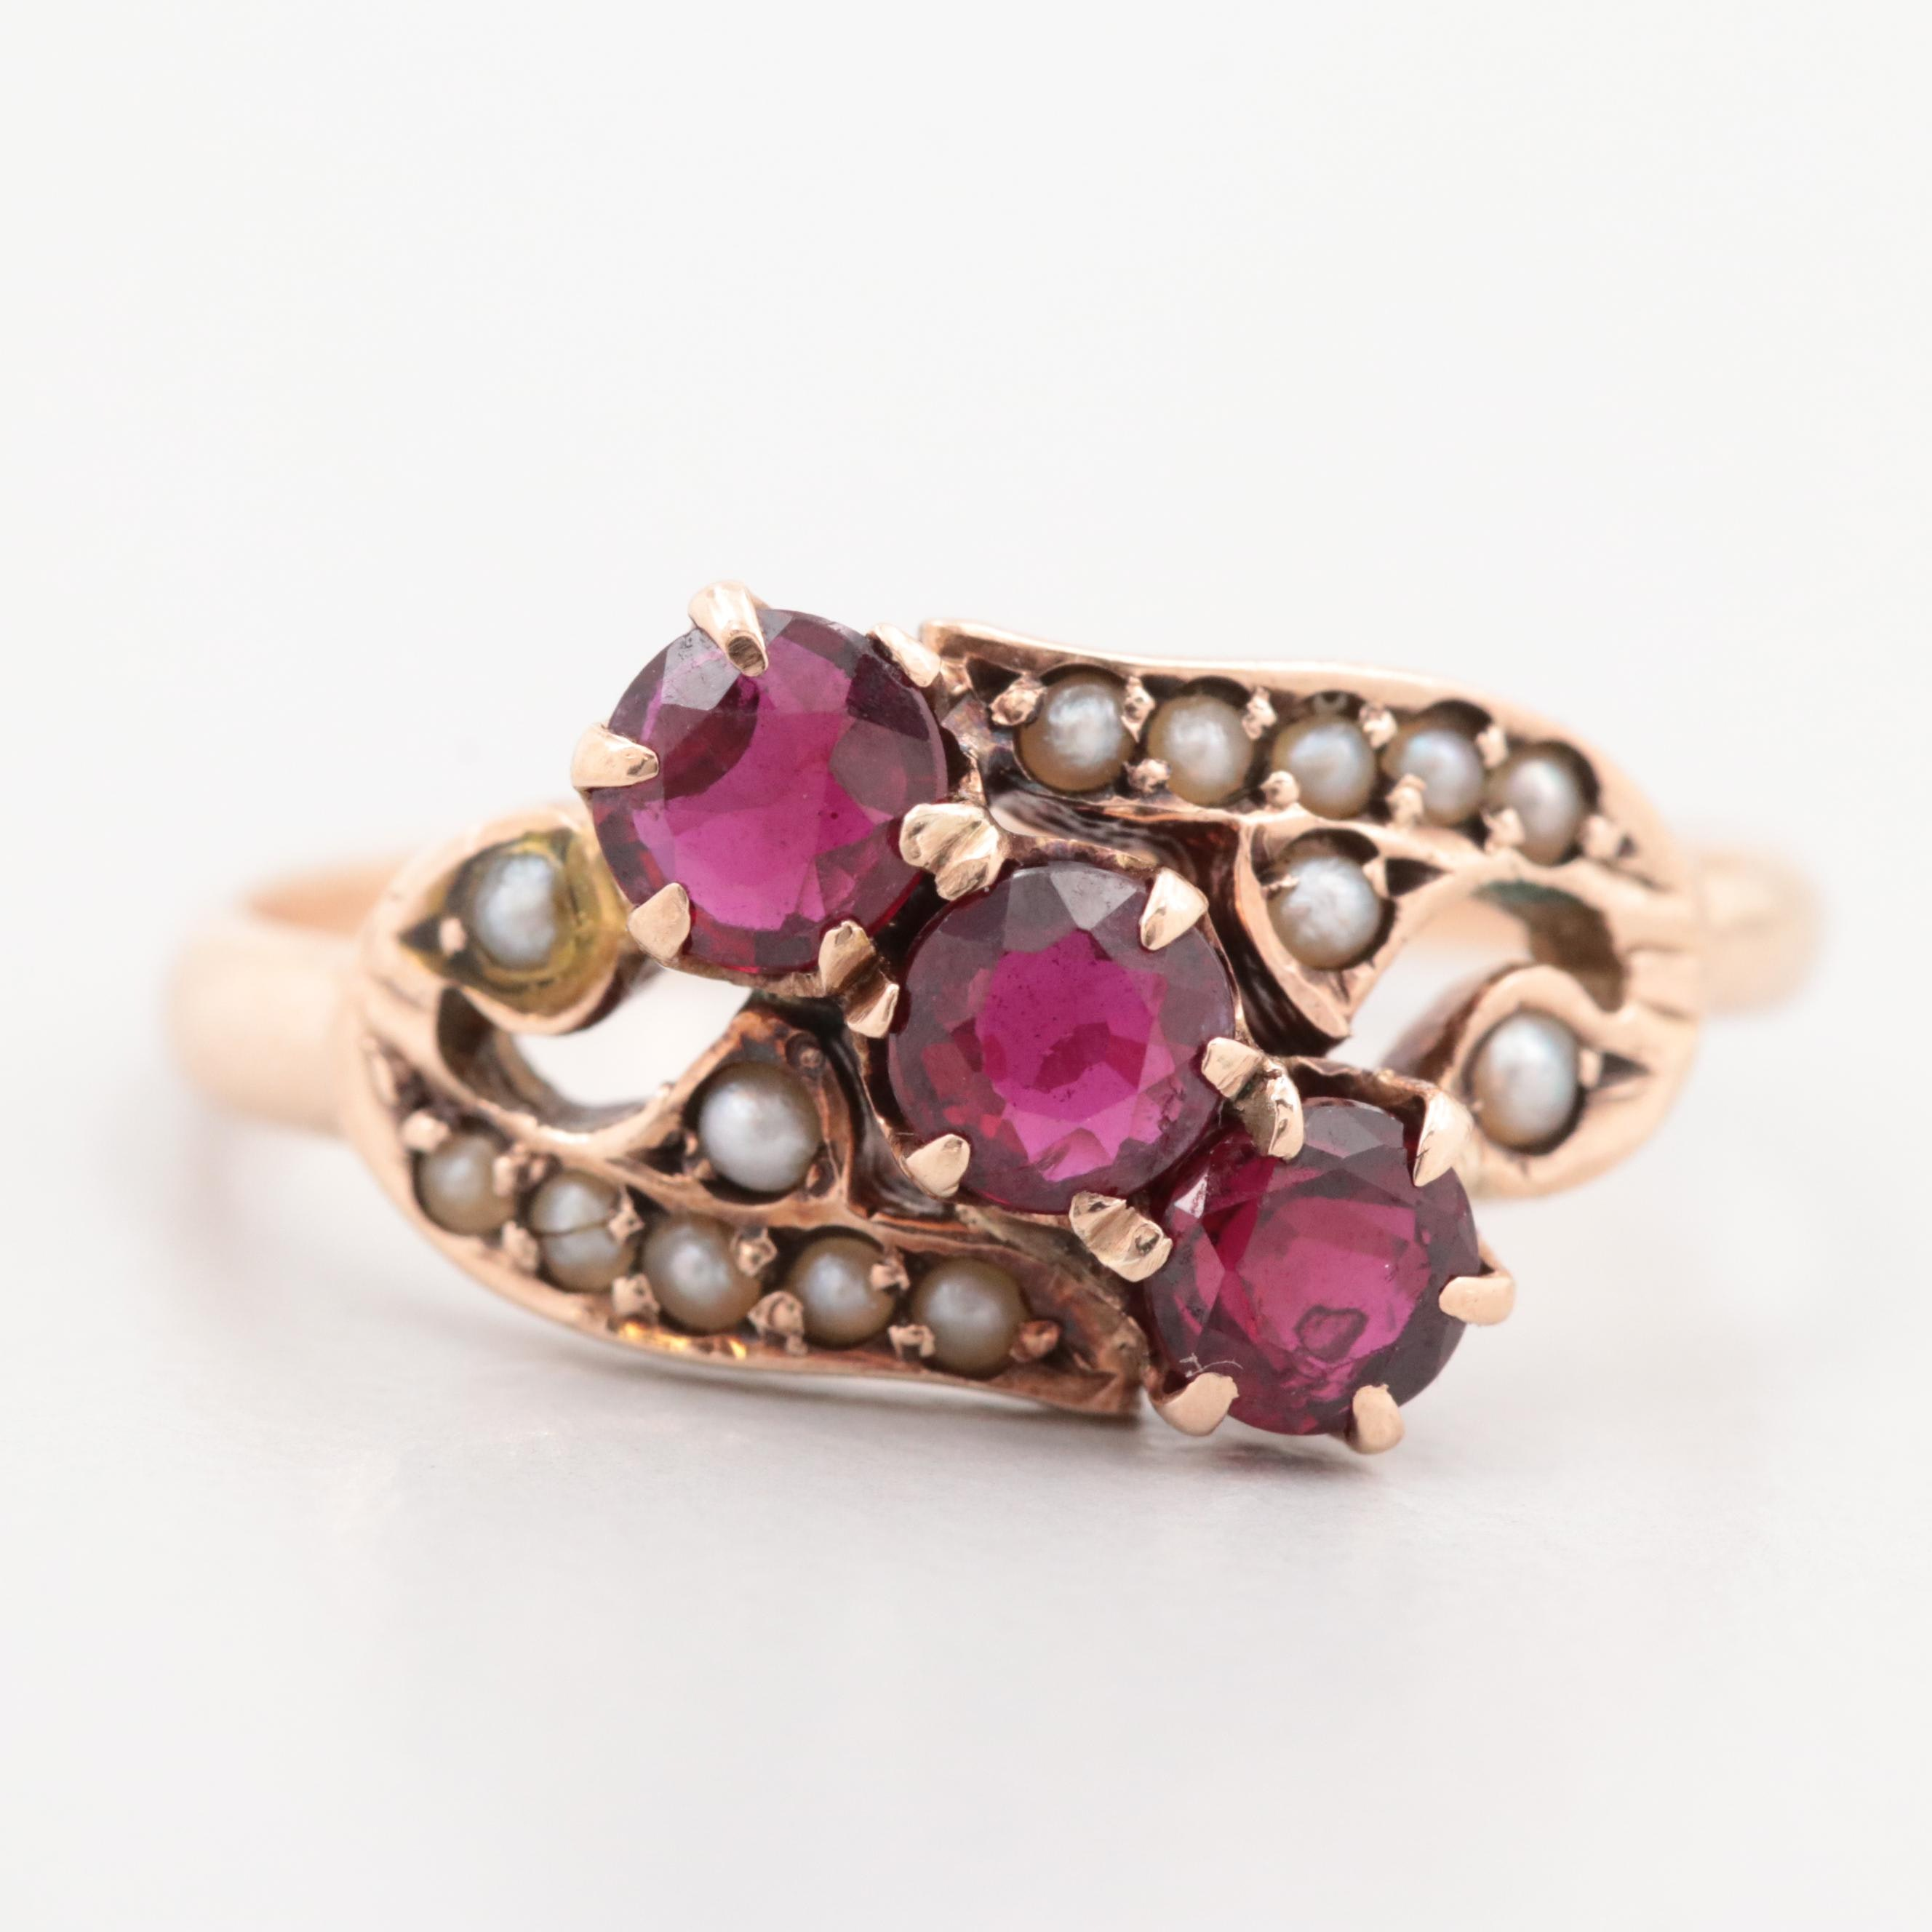 Victorinan 10K Rose Gold Ruby and Cultured Pearl Ring